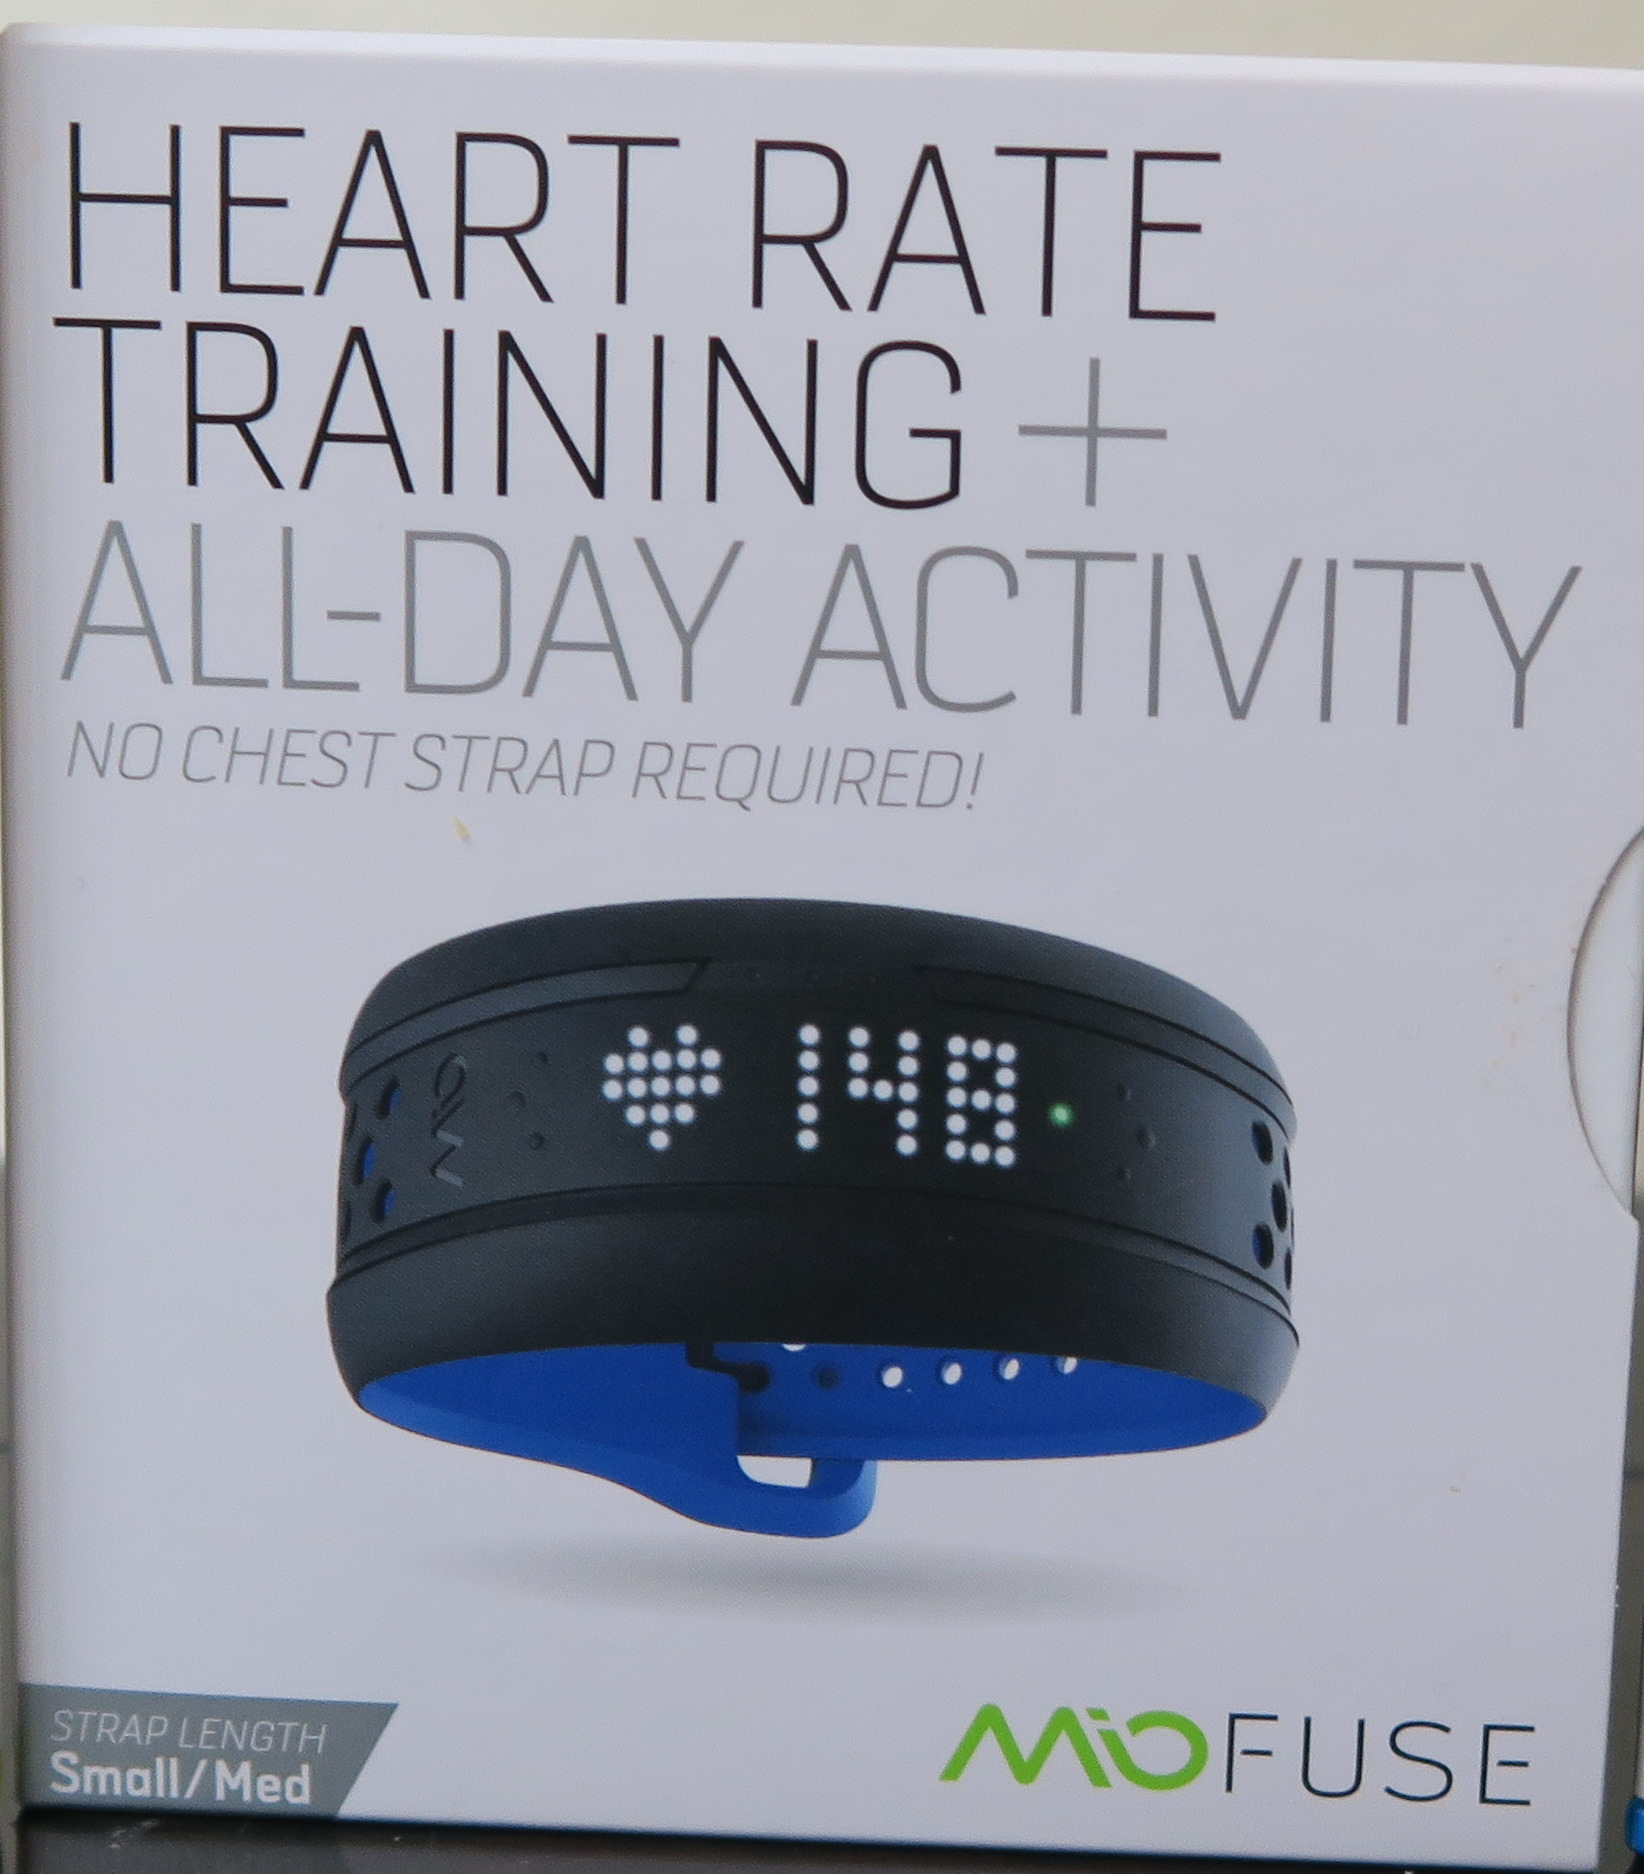 Will the Mio Fuse Replace my FuelBand? – Health Makes the Girl